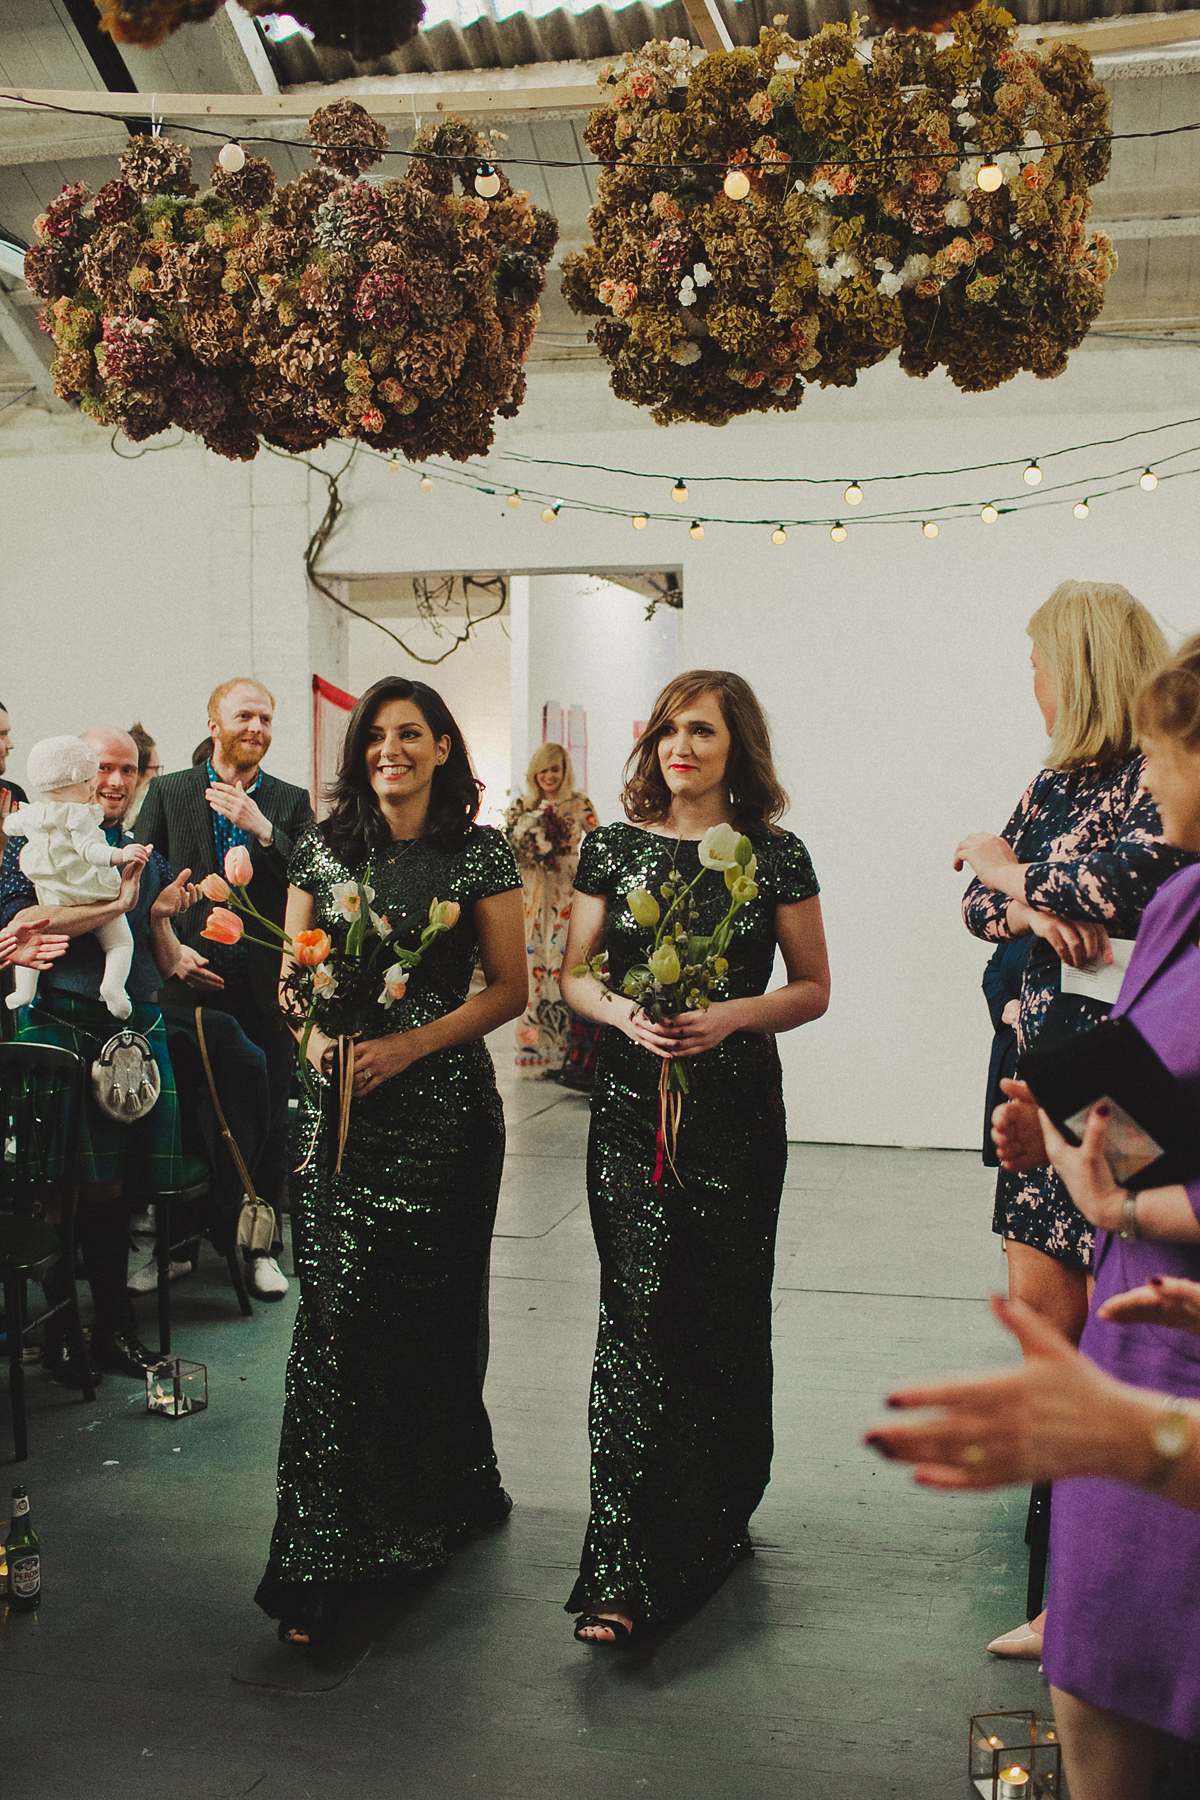 A Colourful Temperley London Dress For A Vibrant Warehouse Wedding (Weddings )